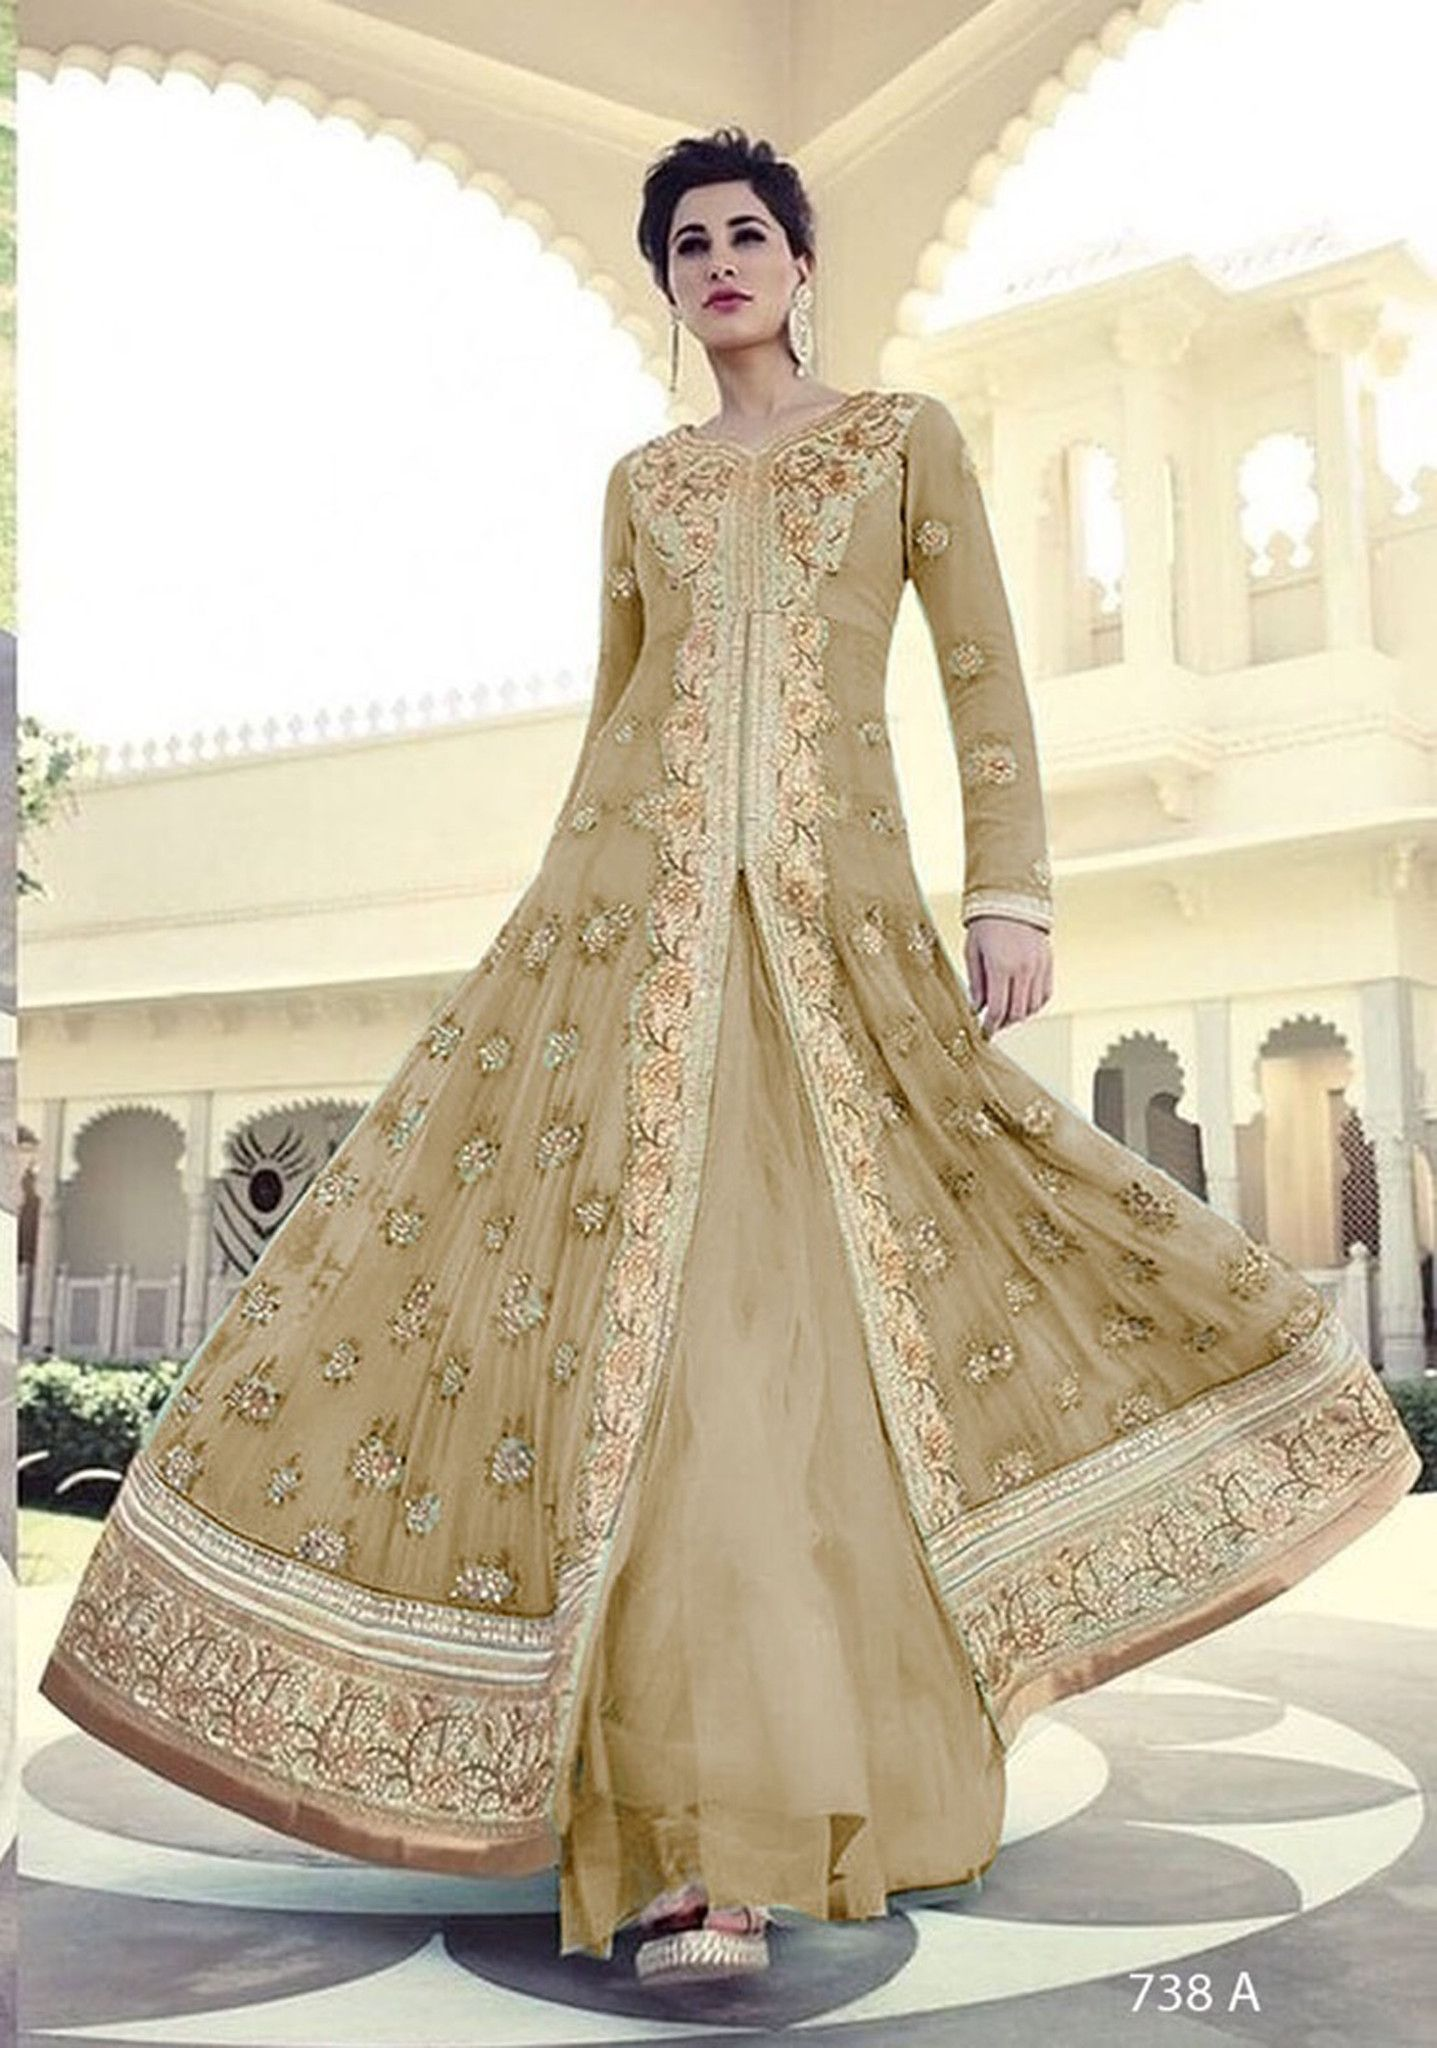 2e05bfd5e09 7318-A Gold Colour Nargis Fakhri Wedding Wear Dress